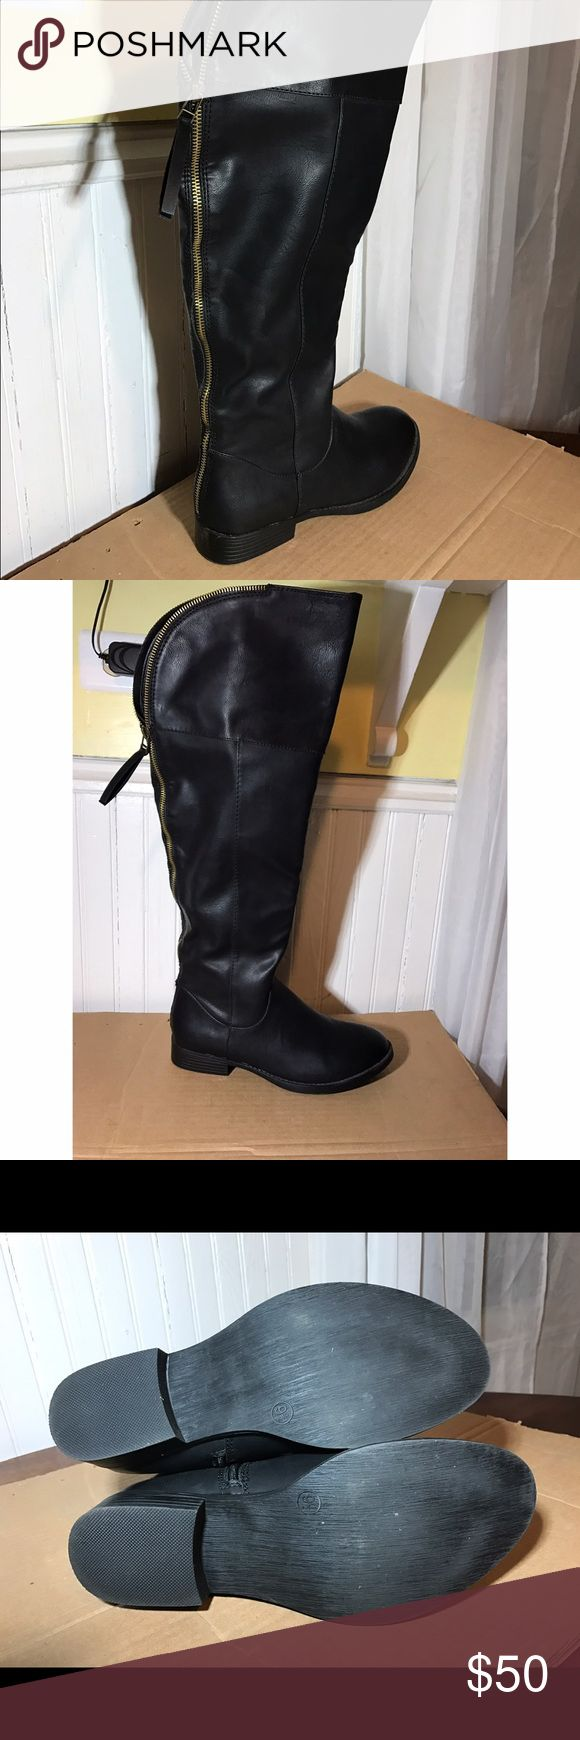 Over the knee boots Mossimo women's over the knee black boots, never worn Mossimo Supply Co. Shoes Over the Knee Boots